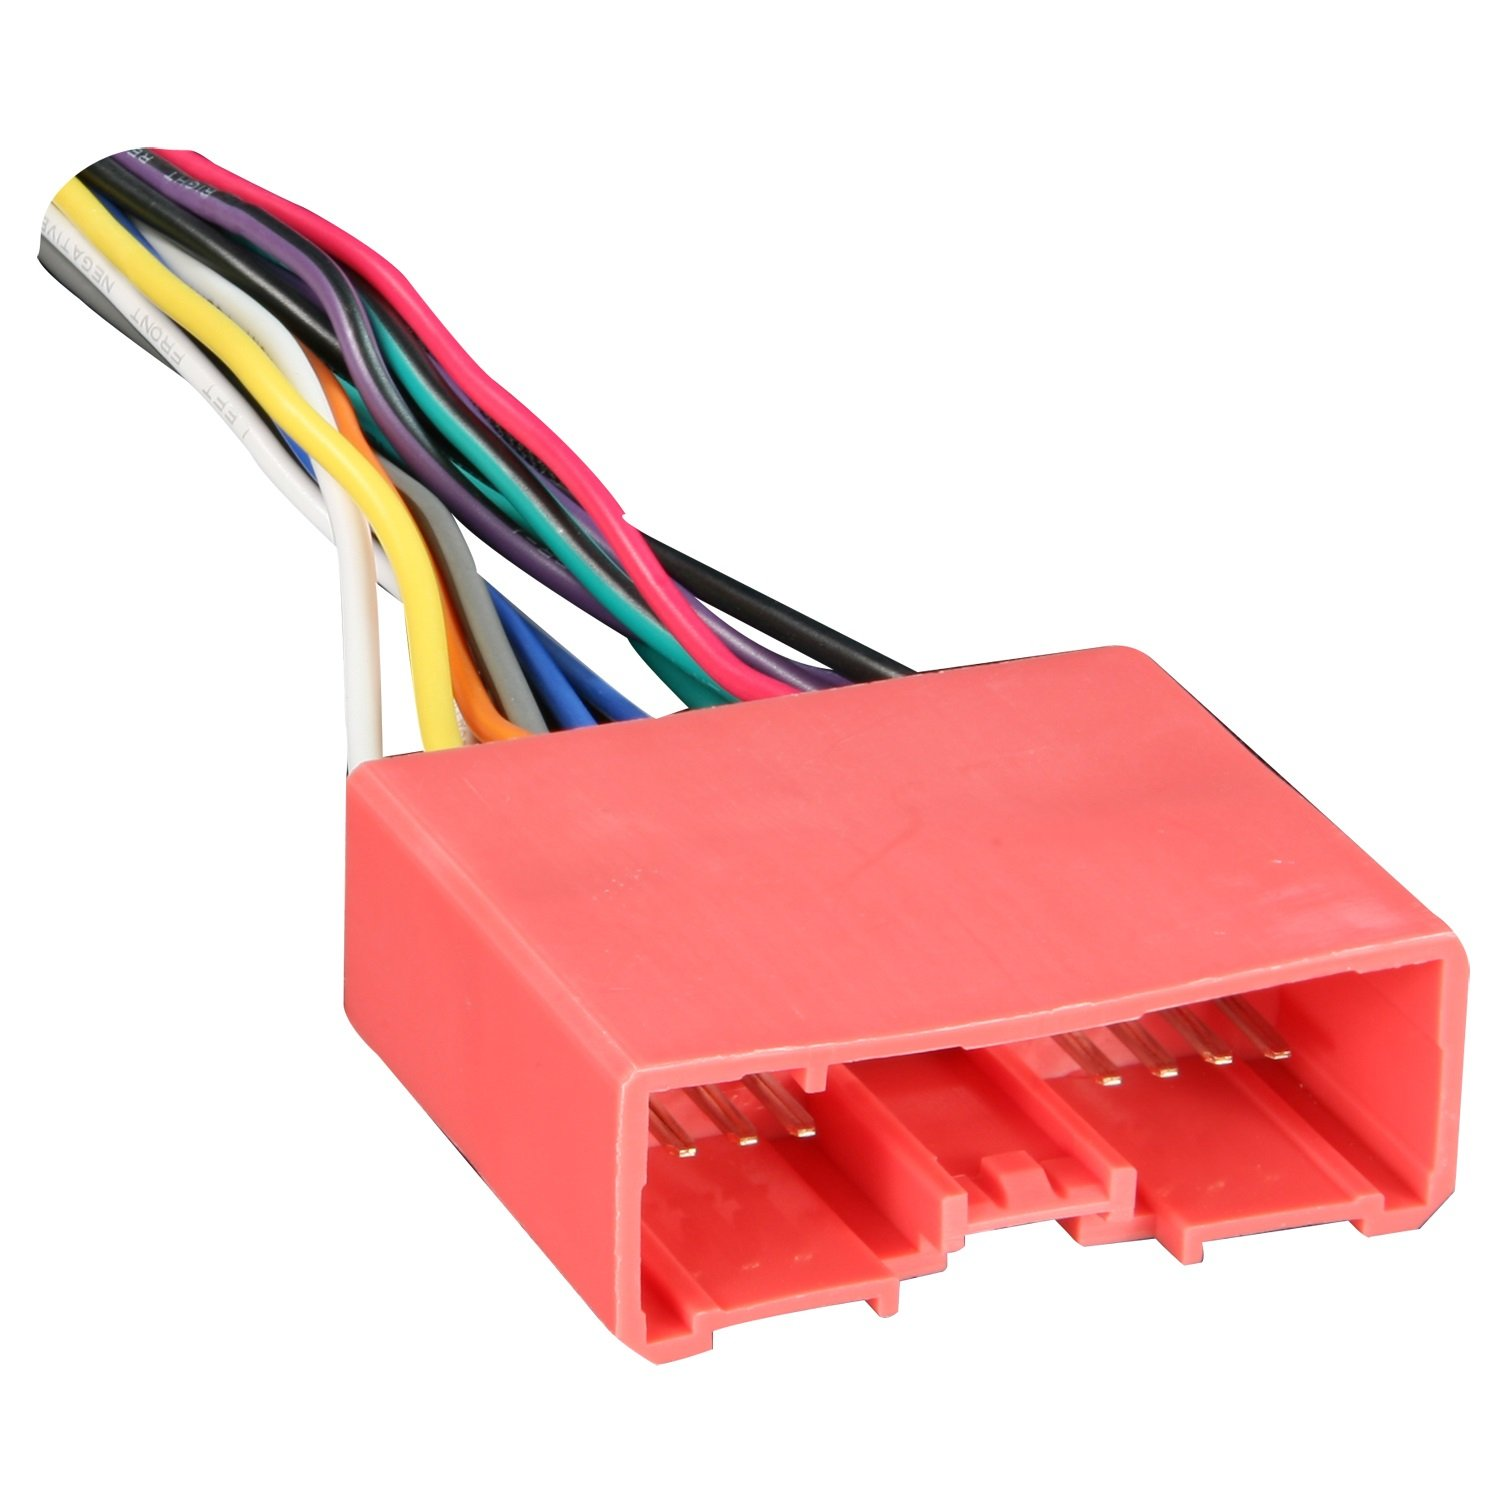 61xRWoZ7Z8L._SL1500_ amazon com metra electronics 70 7903 wiring harness for 2001 up metra wiring harness at eliteediting.co